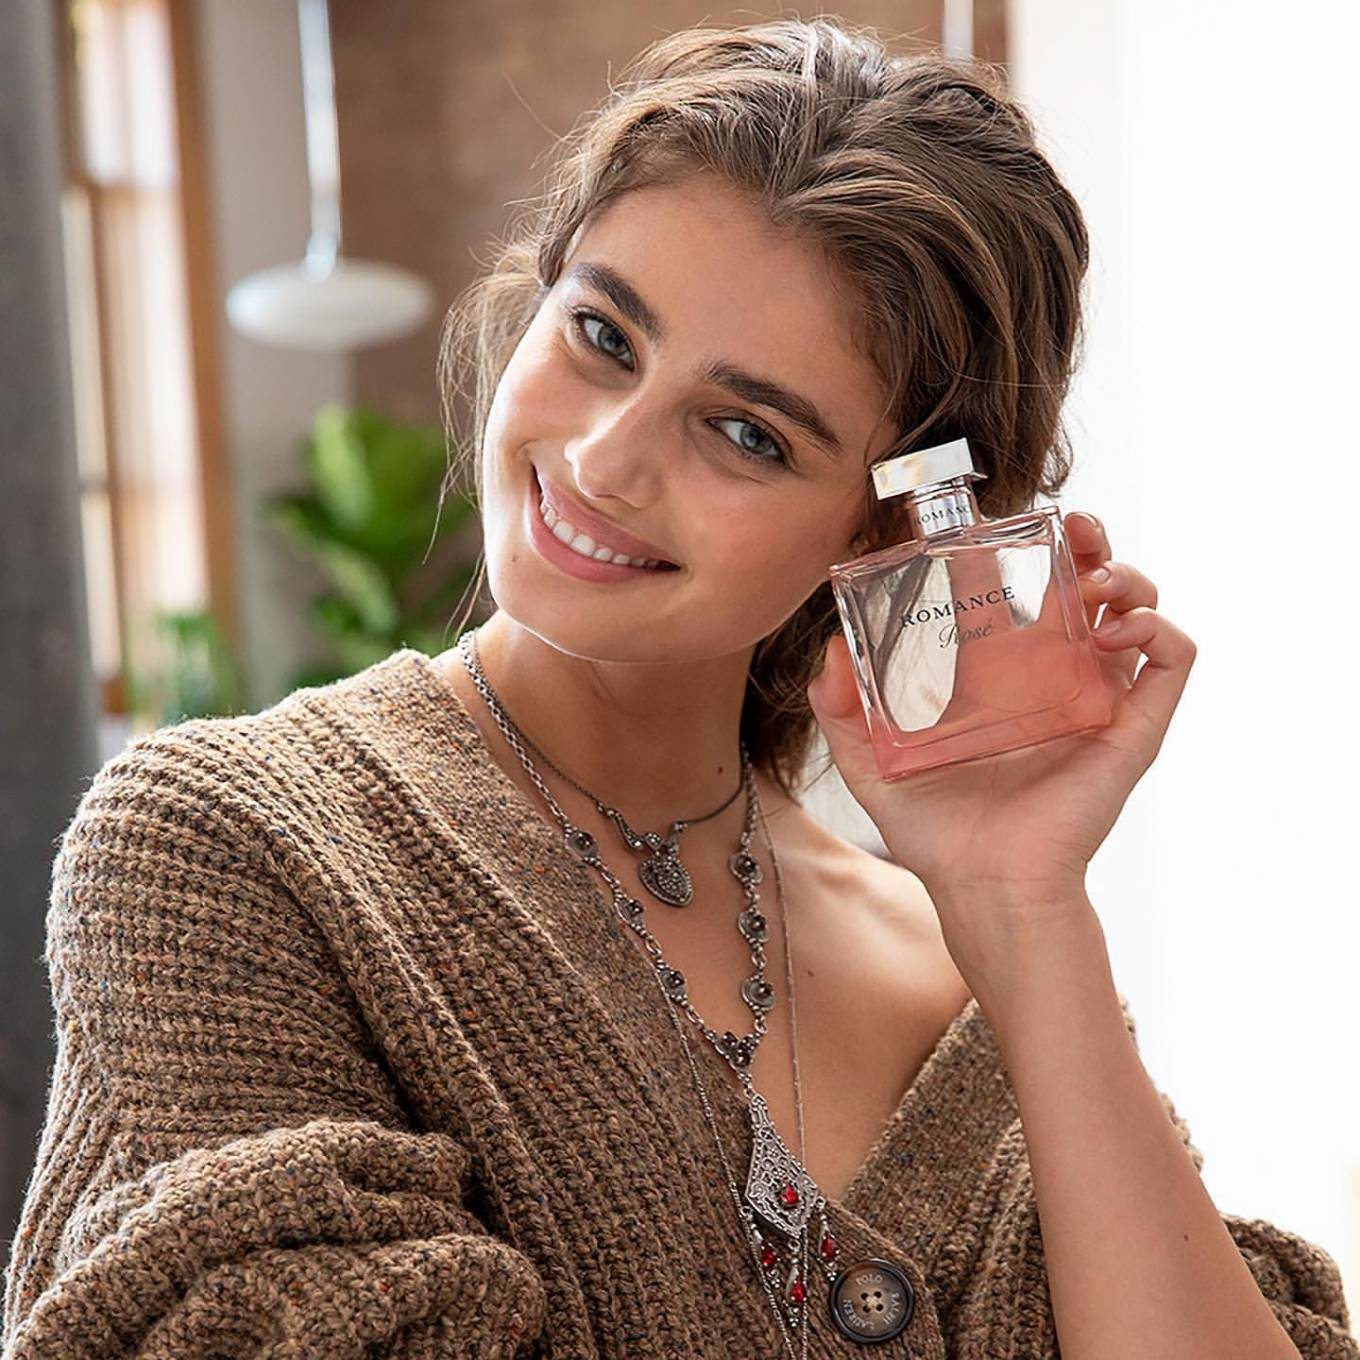 Taylor Hill - Photoshoot for Ralph Lauren Romance fragrance campaign (2020)